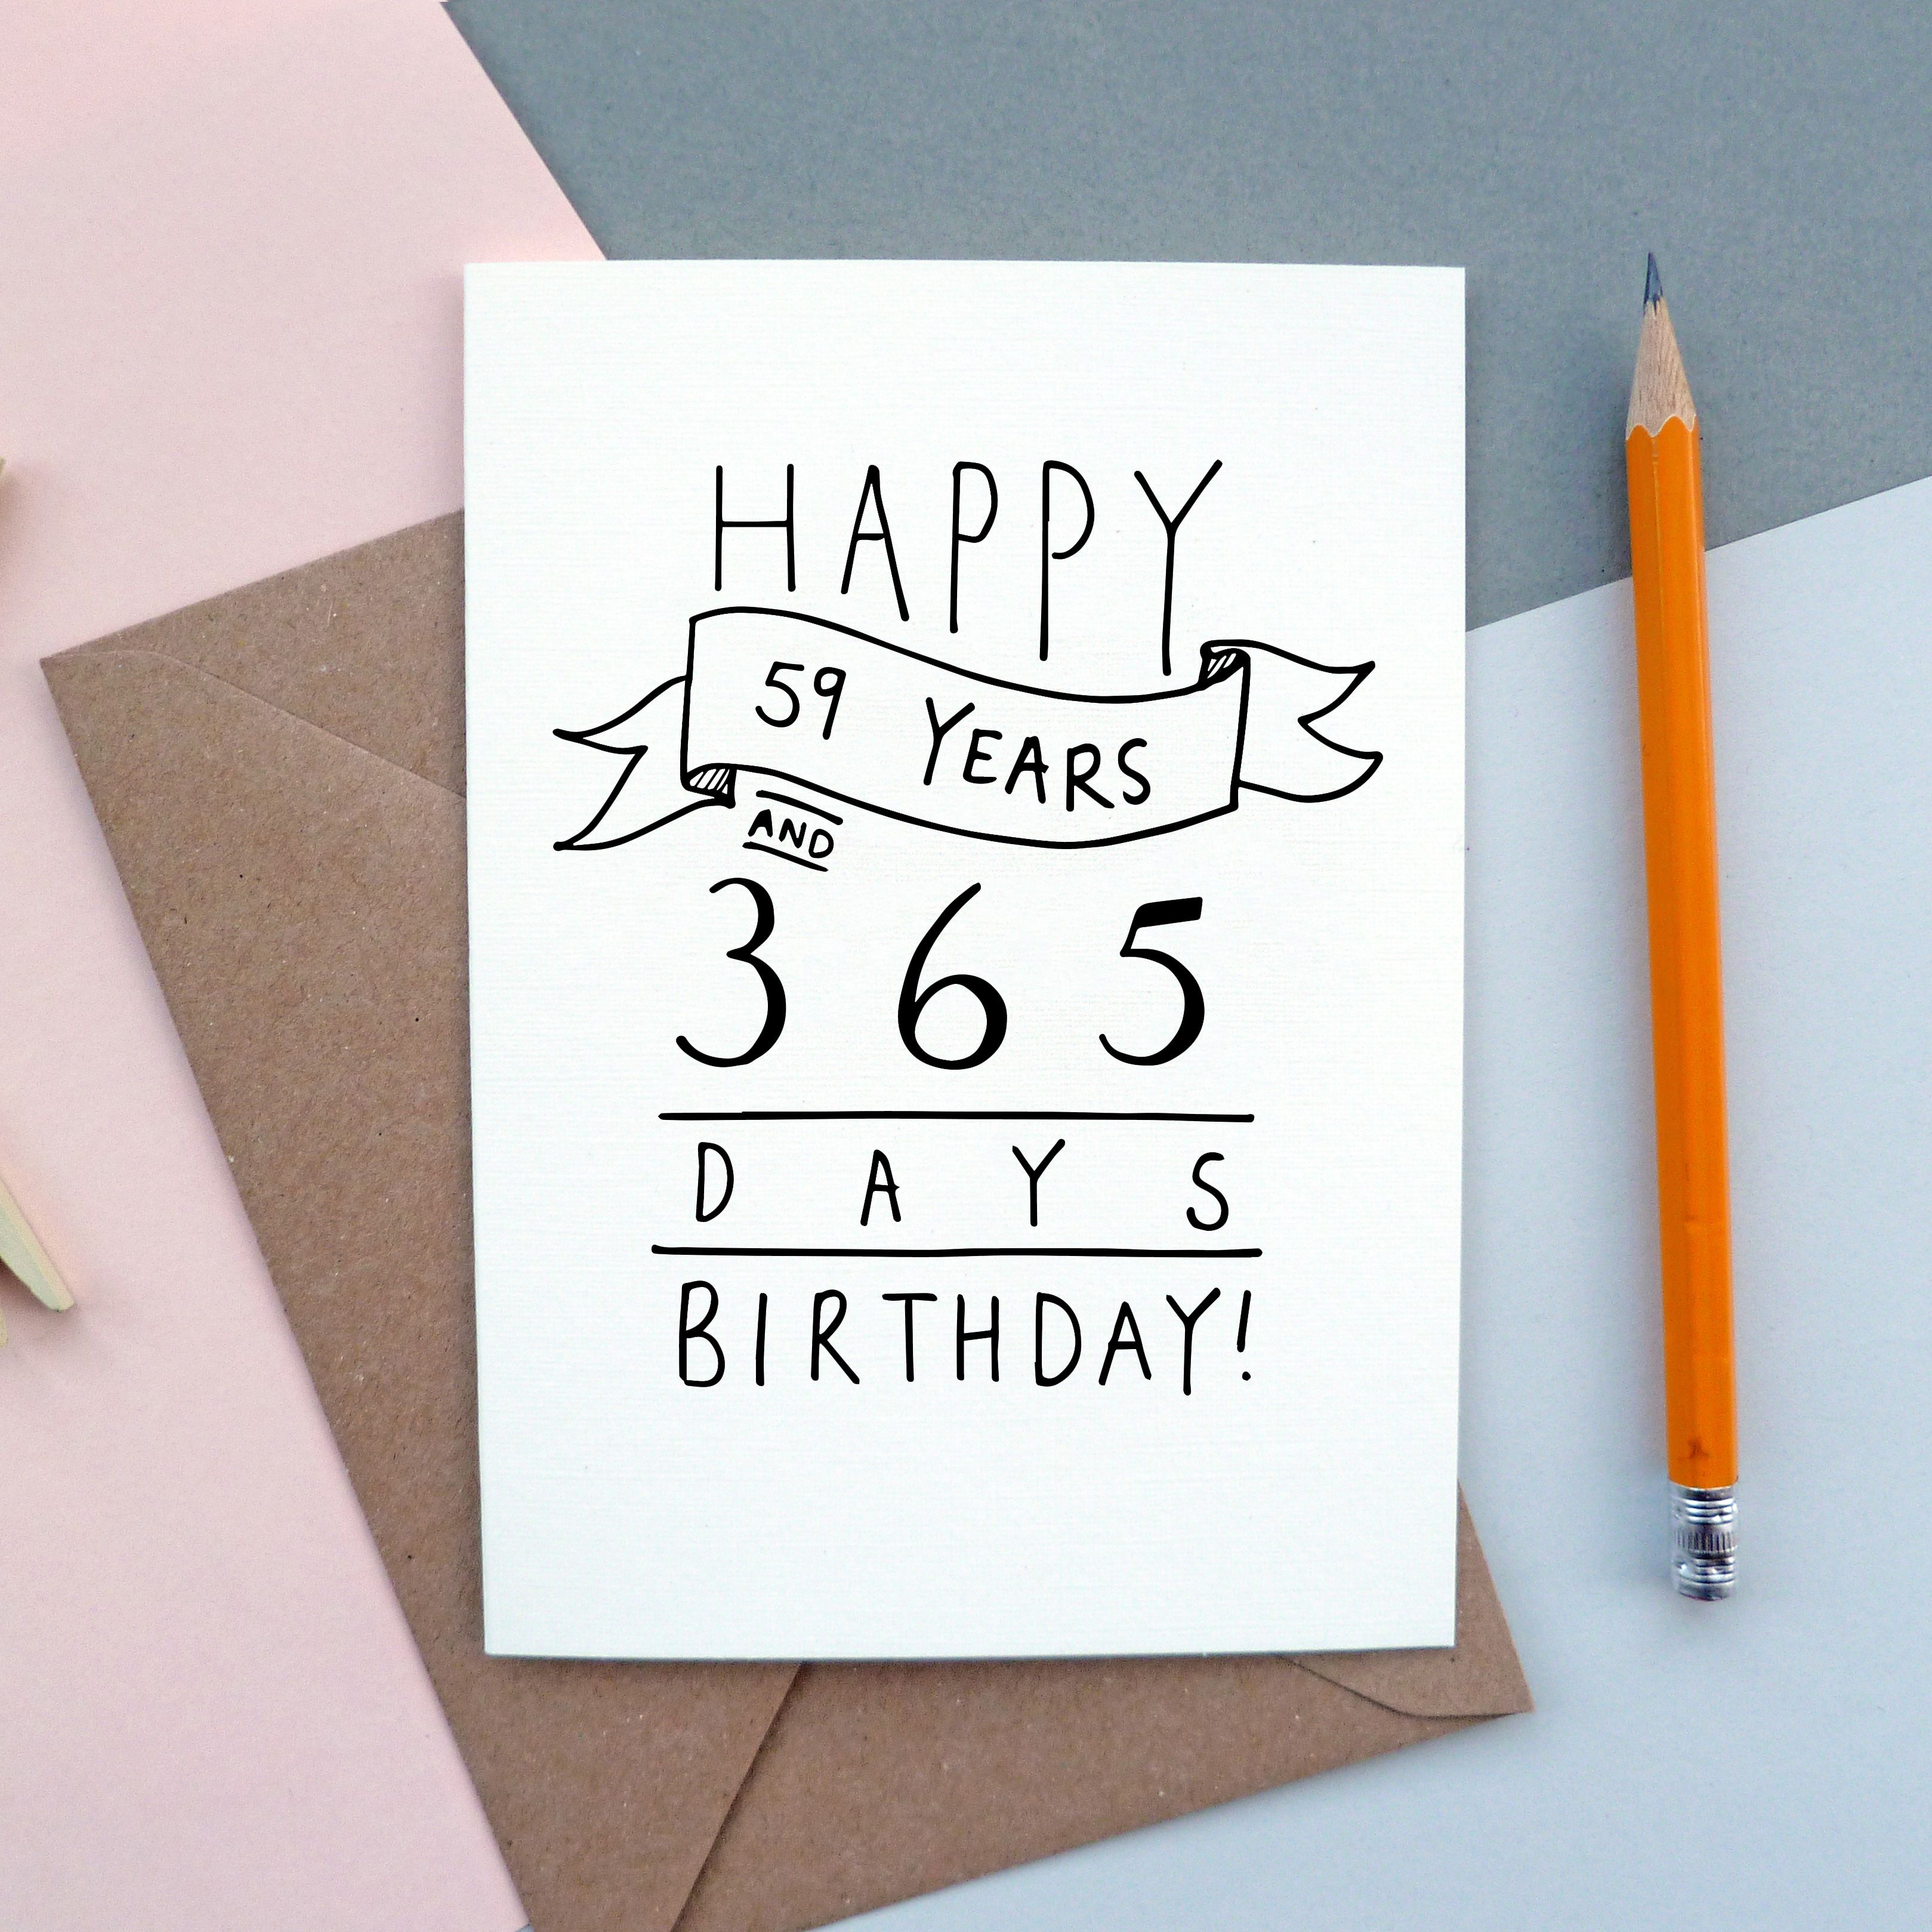 Happy 59 Years And 365 Days 60th Birthday Card Karten Zum 60 Geburtstag 40 Geburtstag Karten Alte Geburtstagskarten